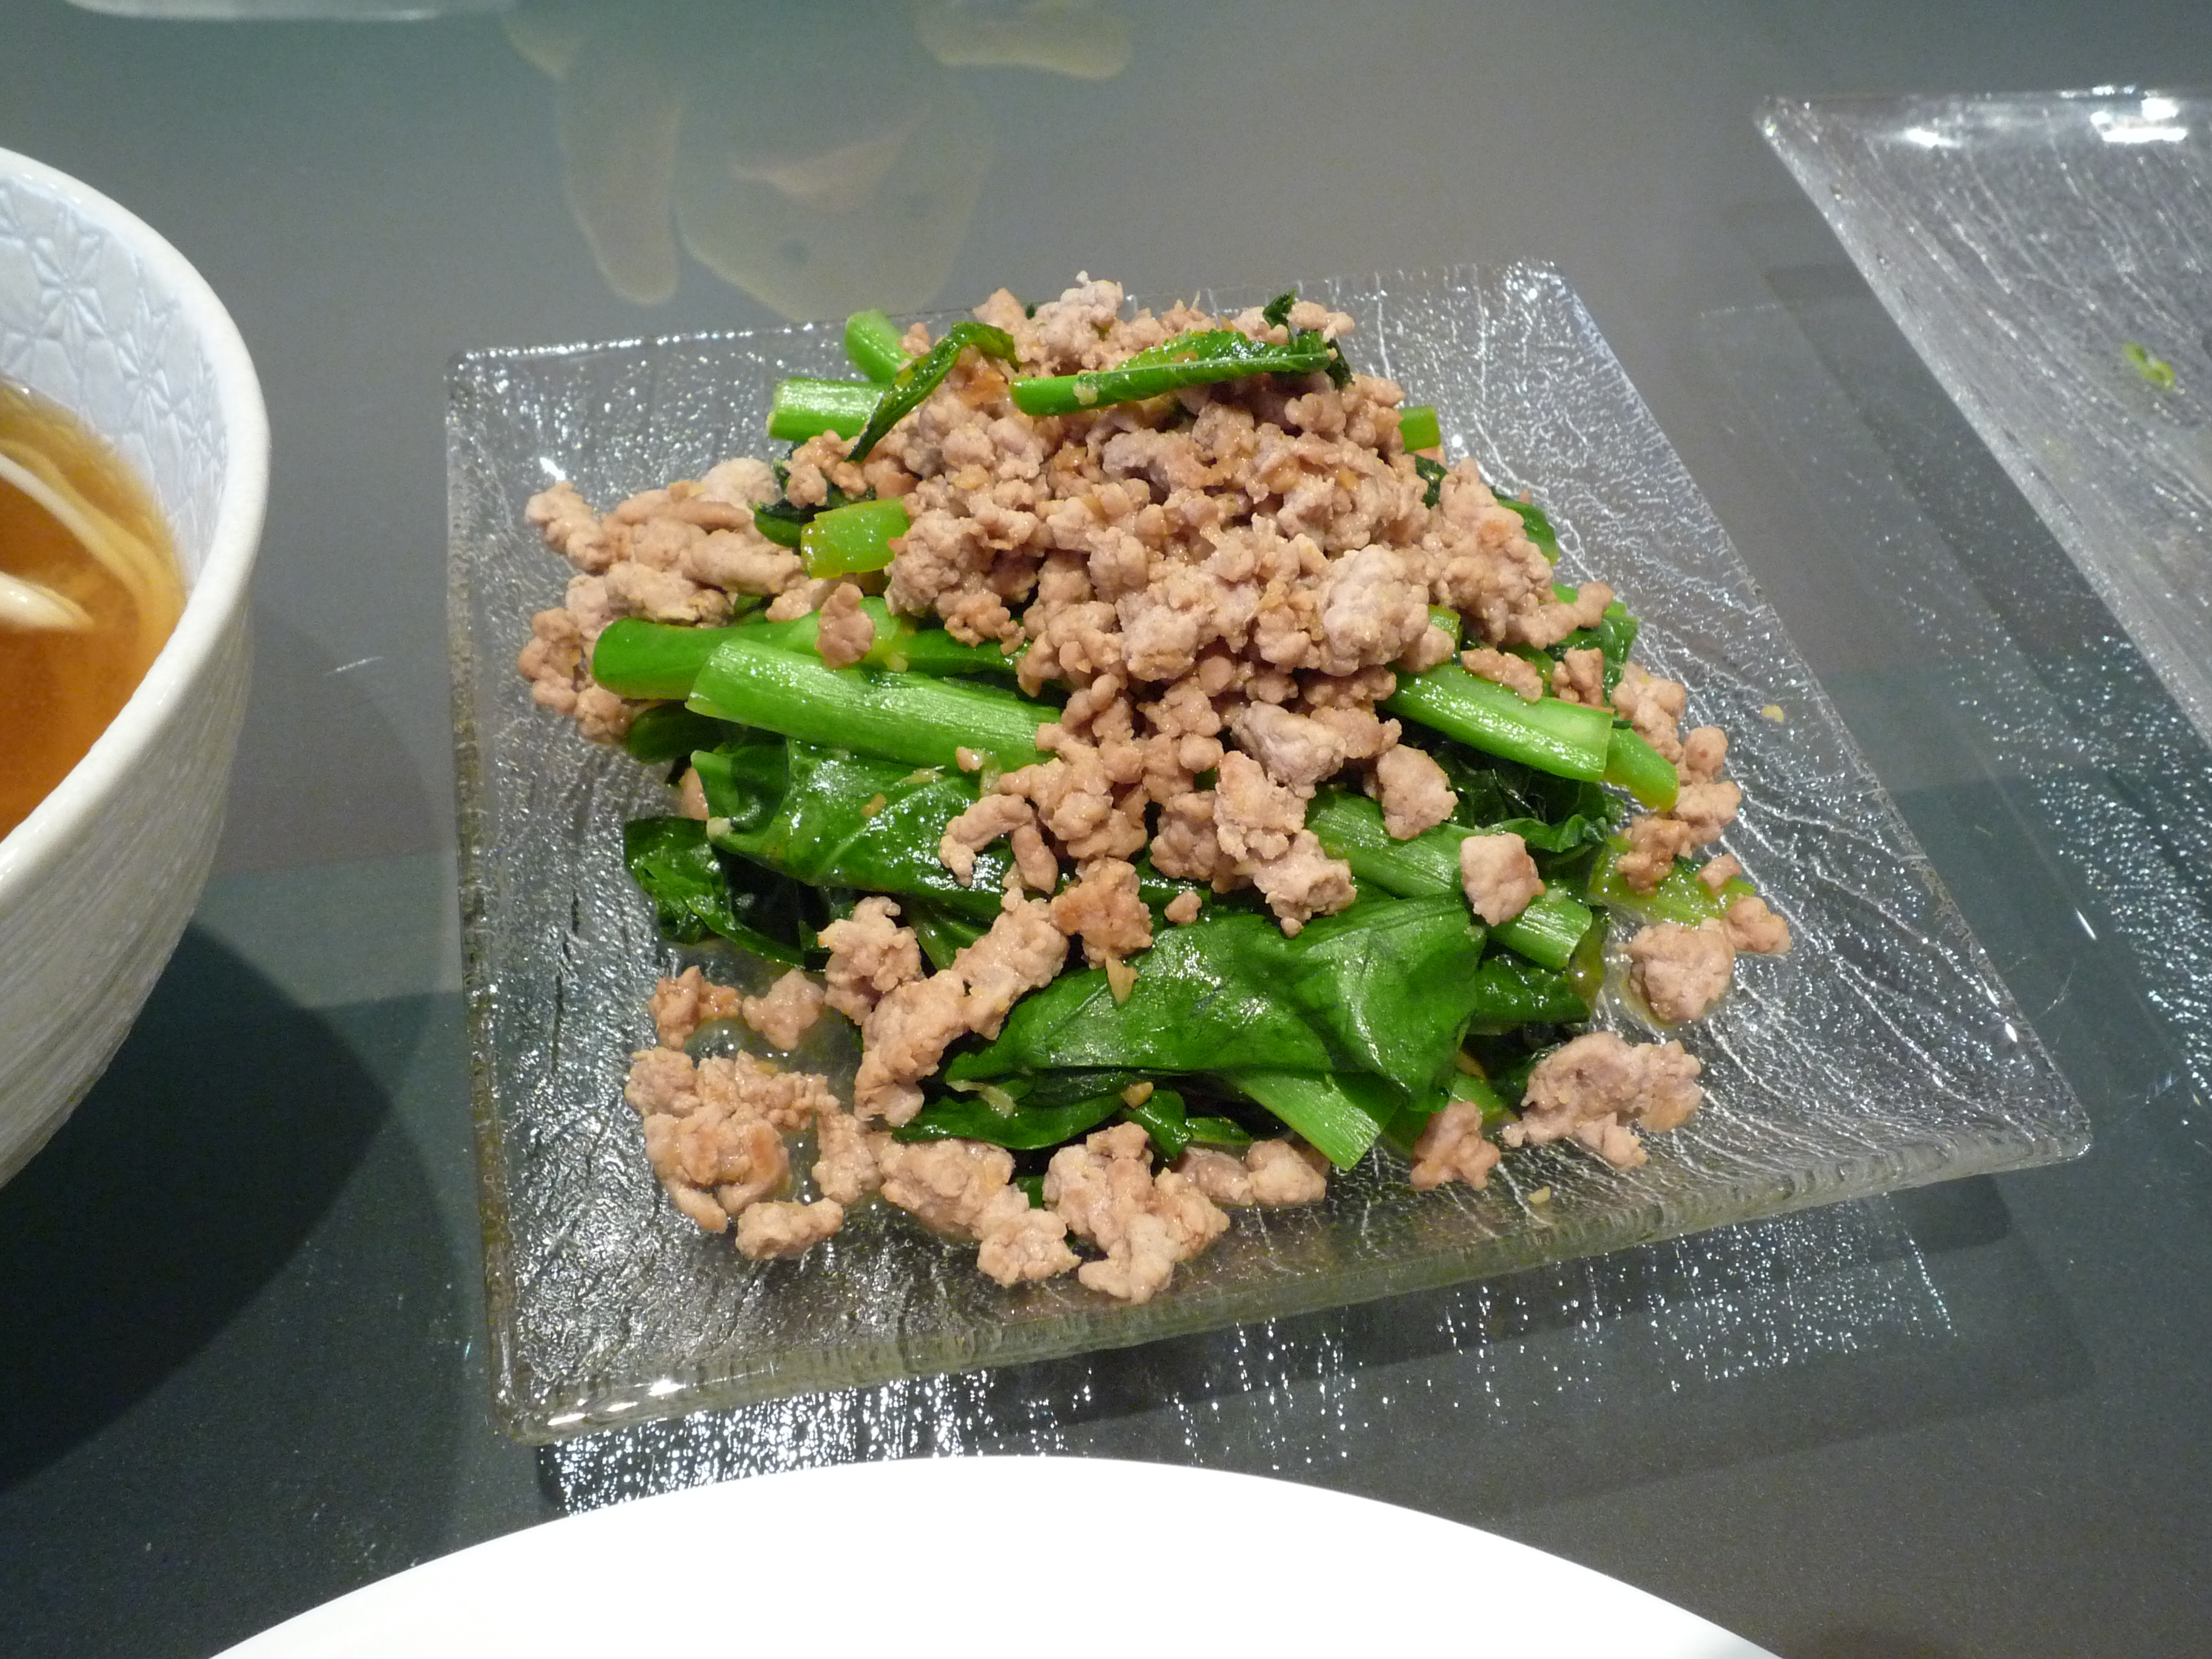 Chinese broccoli with mince pork (made very tasty with the cheat ...